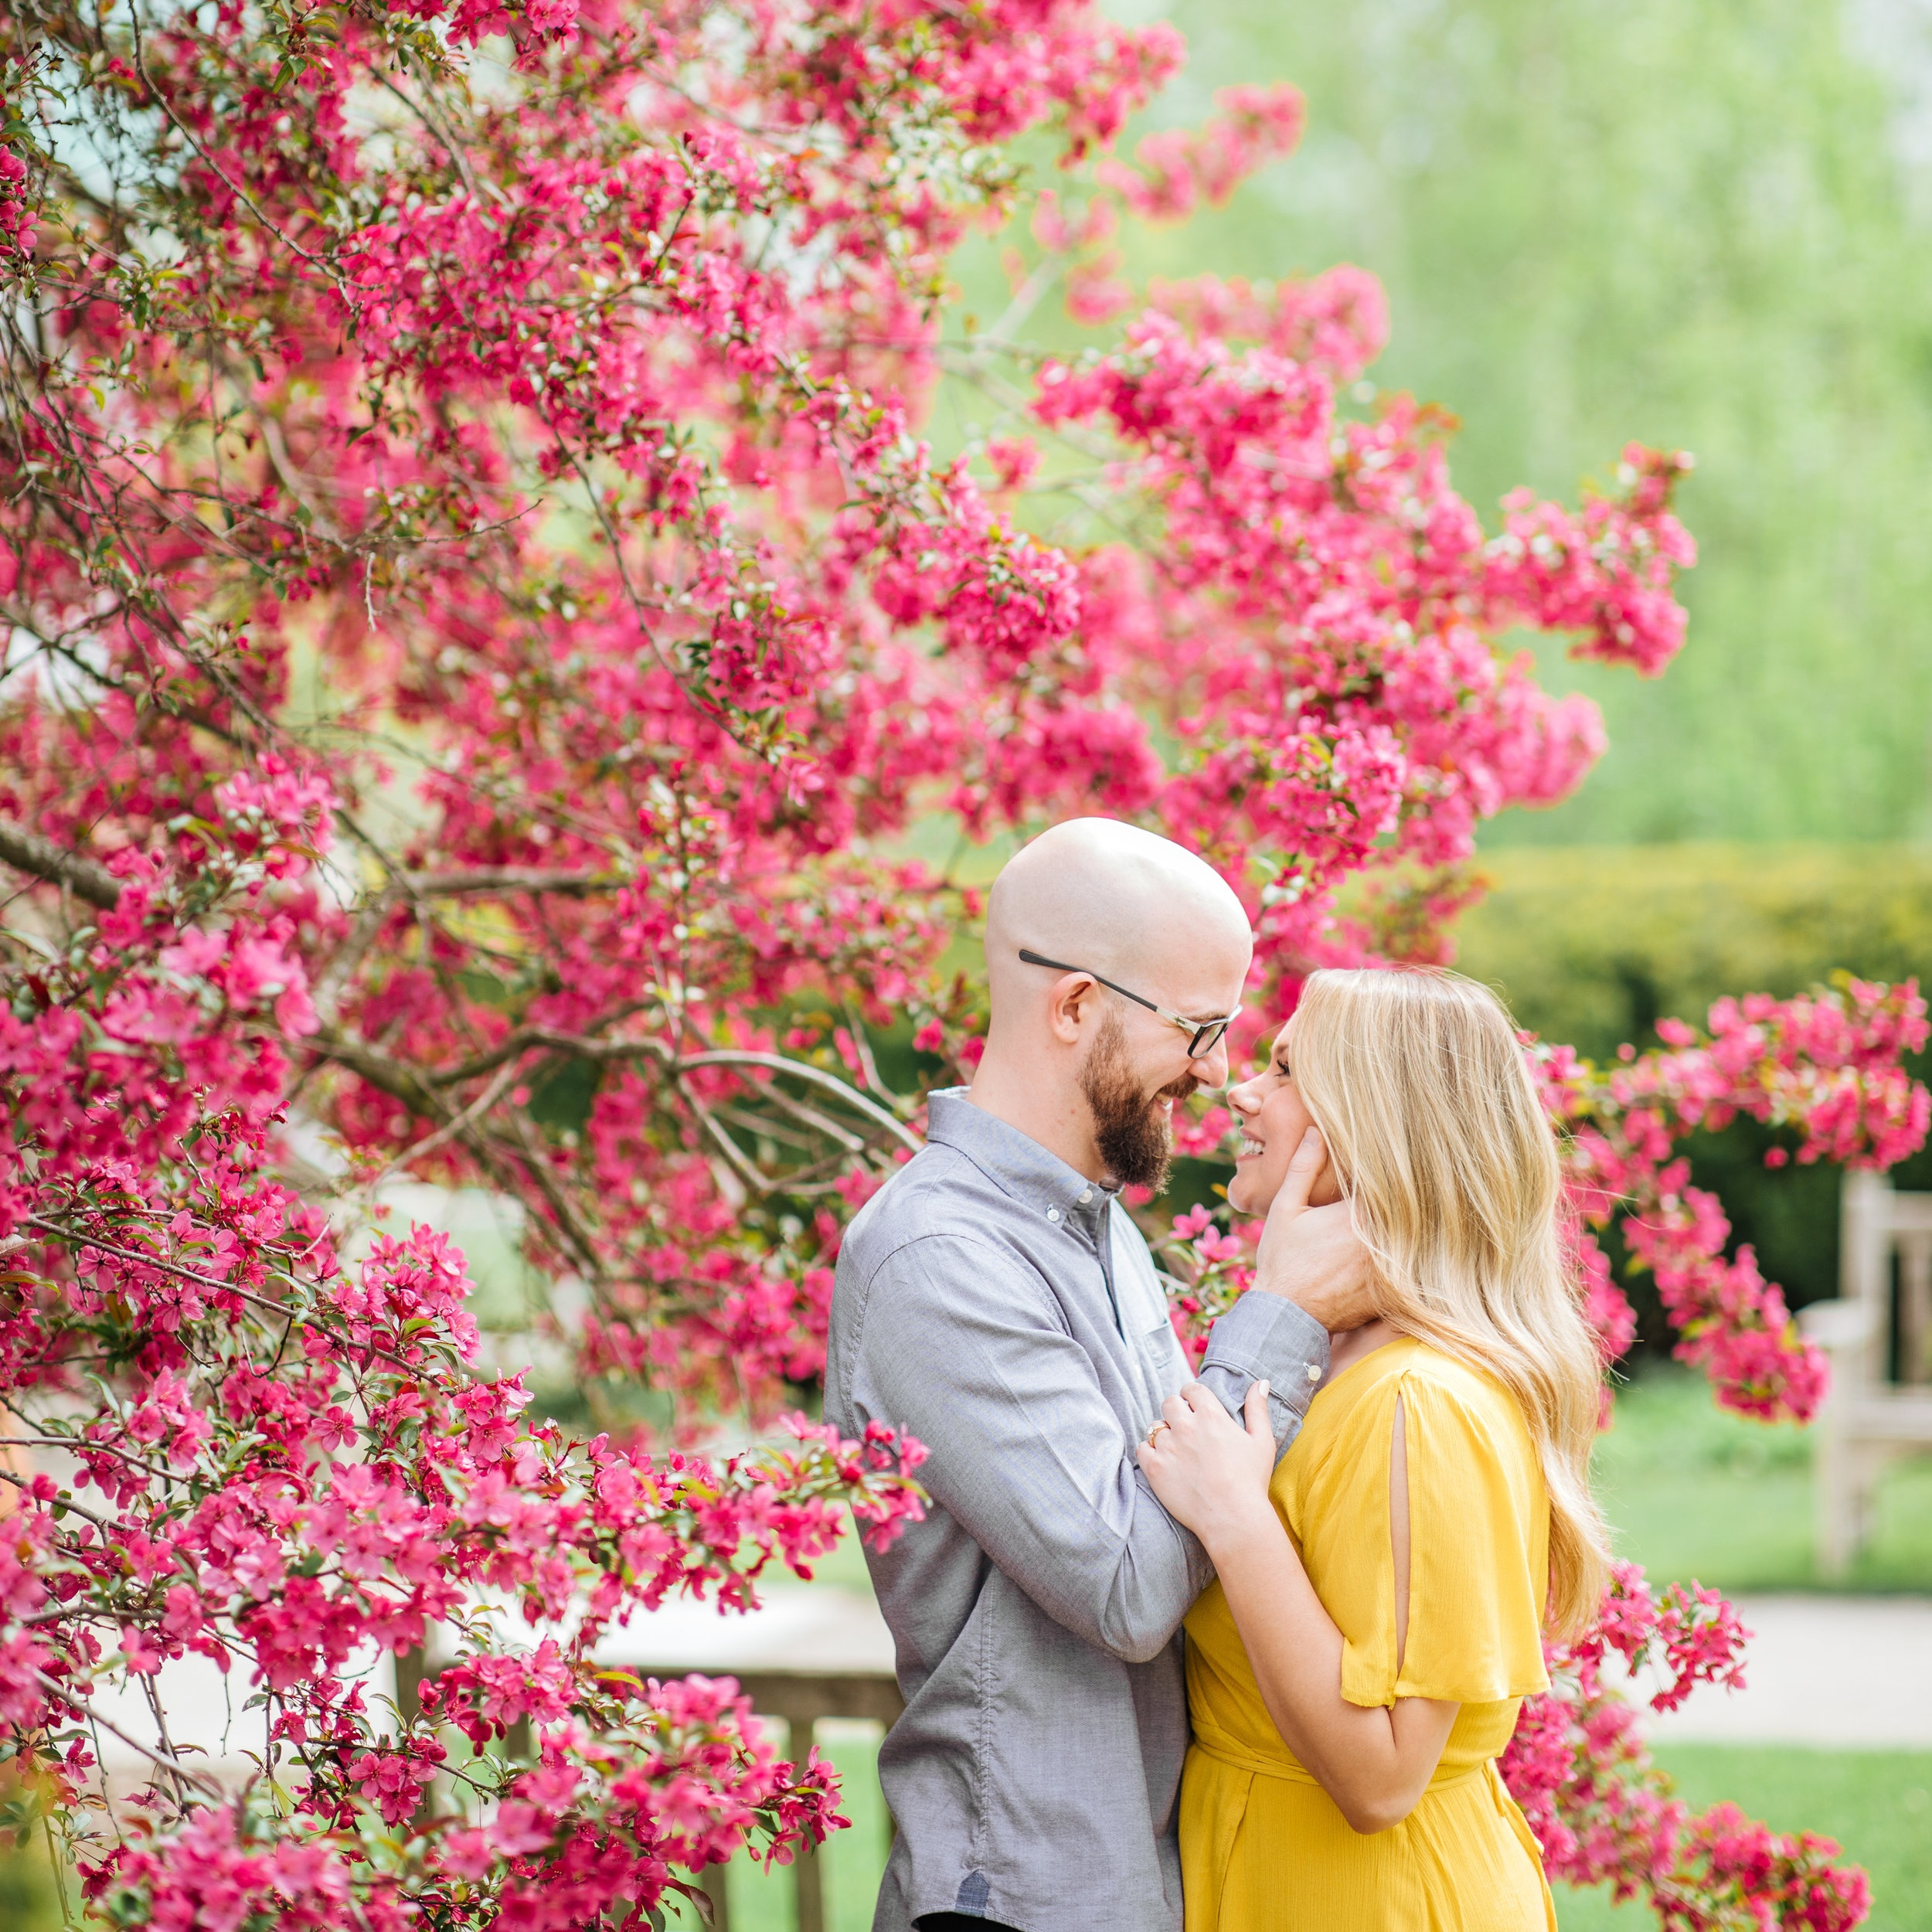 spring ann arbor matthaei botanical garden engagement session